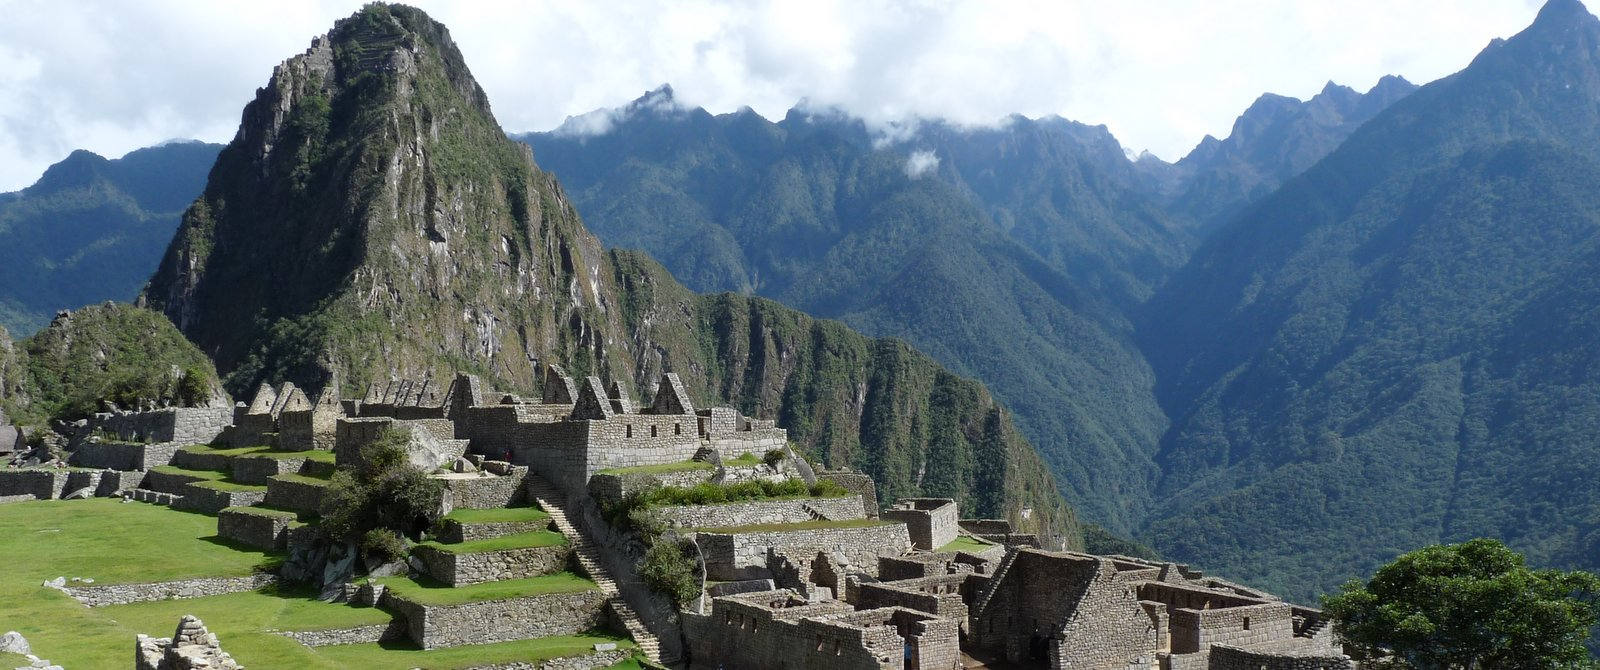 The setting of Machu Picchu is spectacular